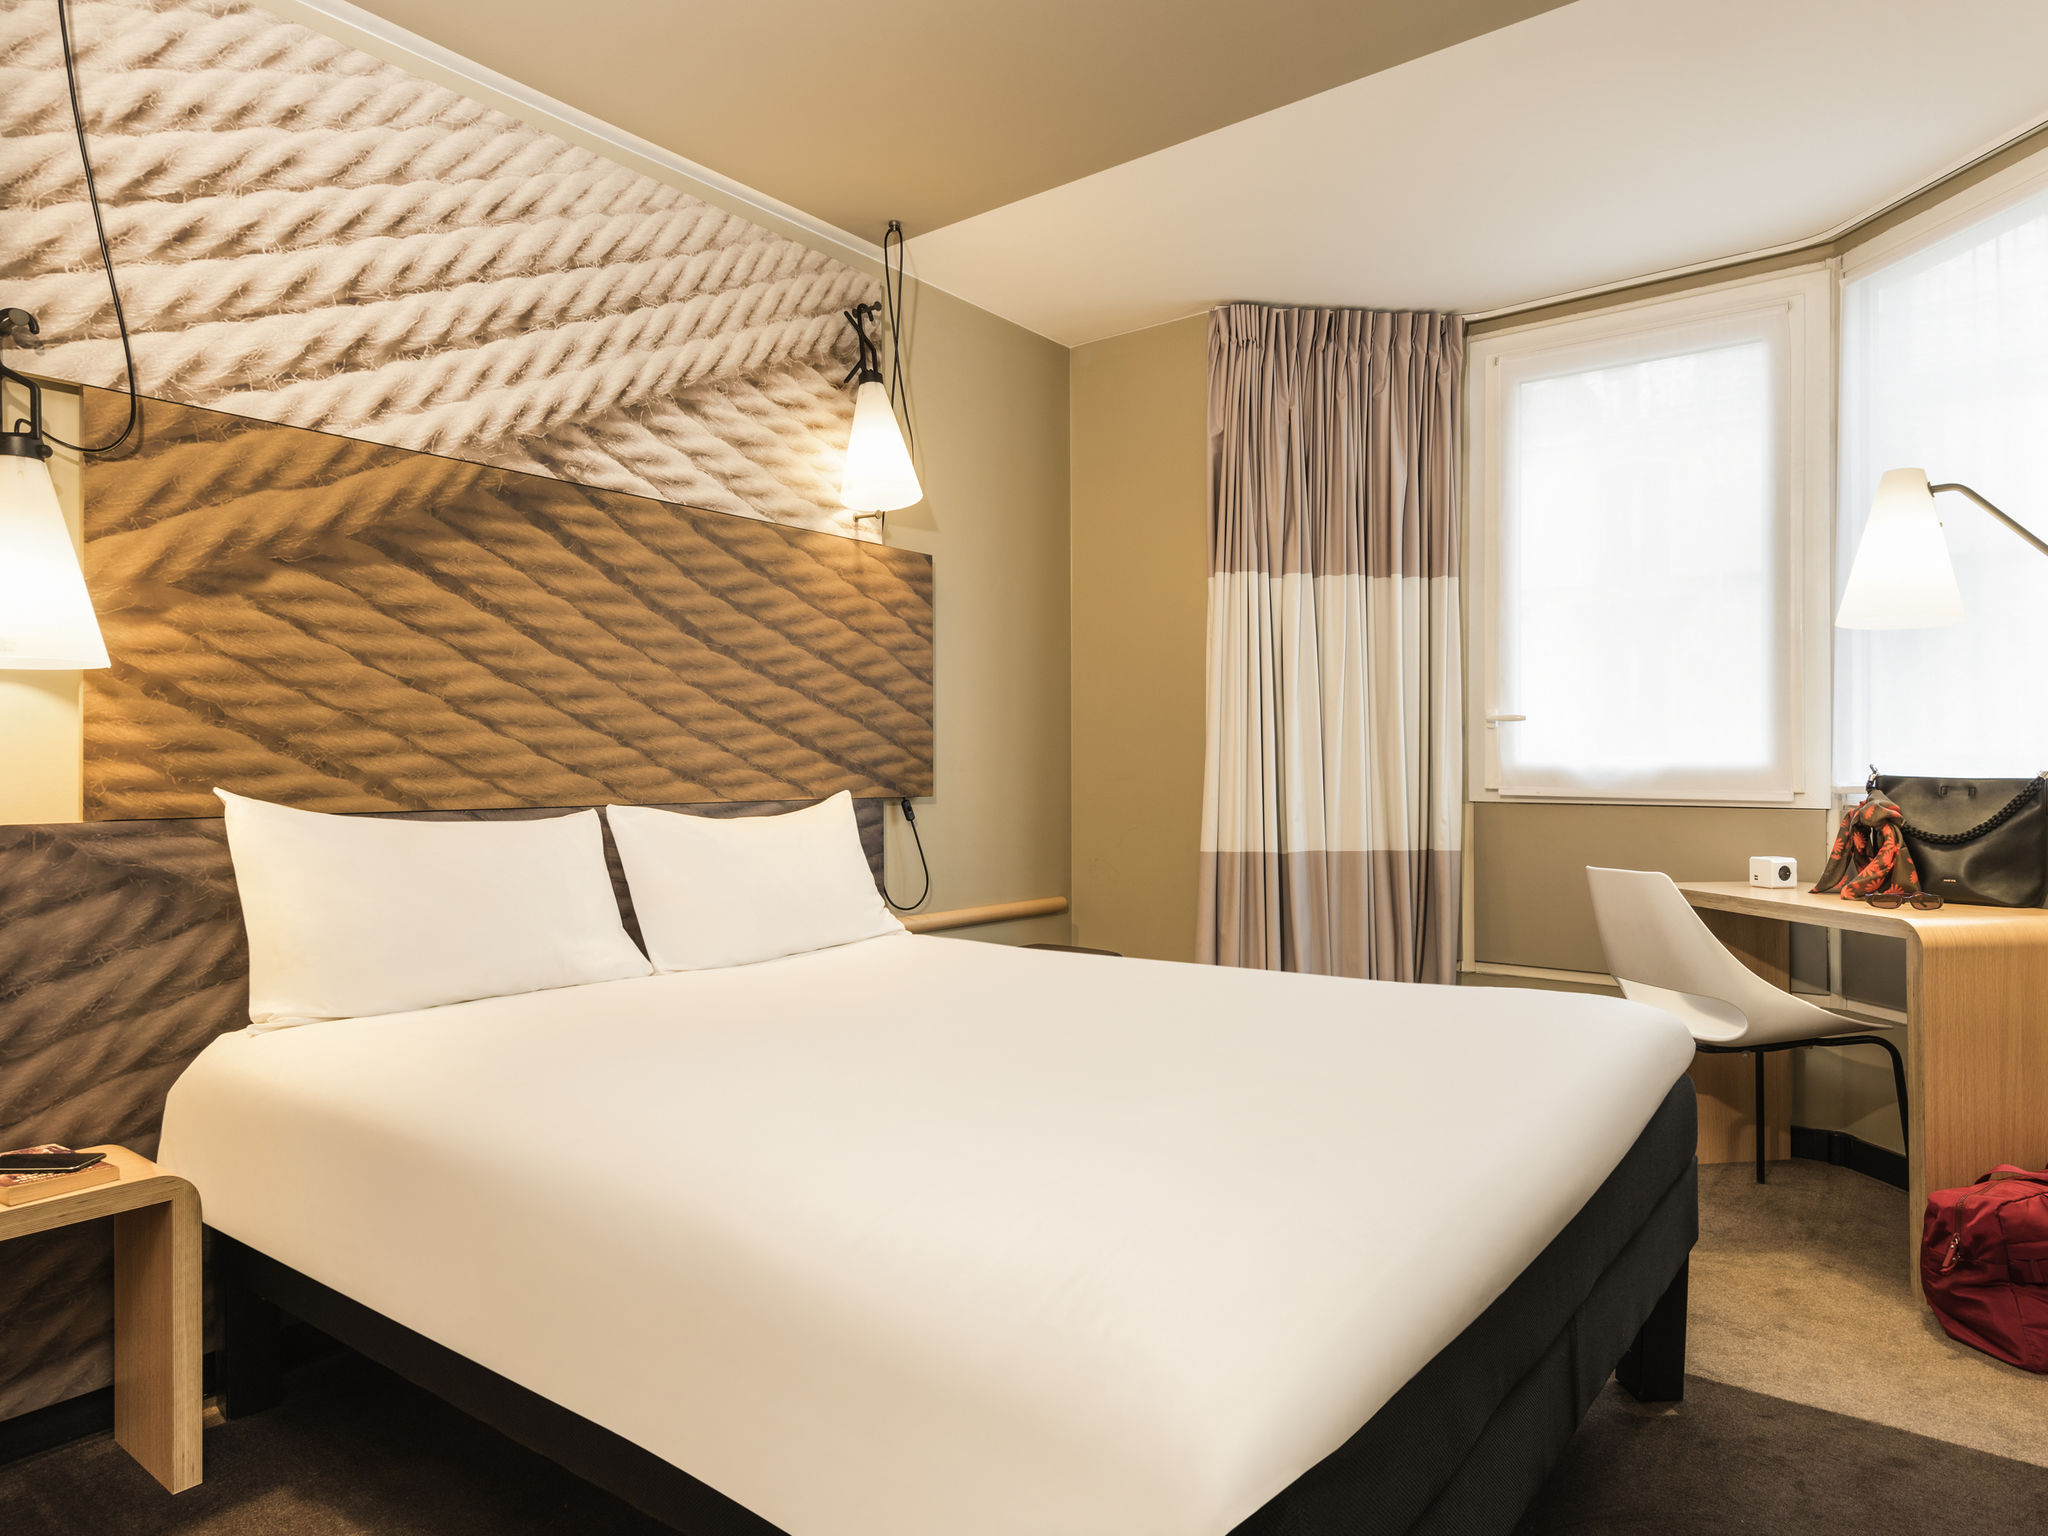 Hotel - ibis Paris Gare du Nord Chateau Landon 10th